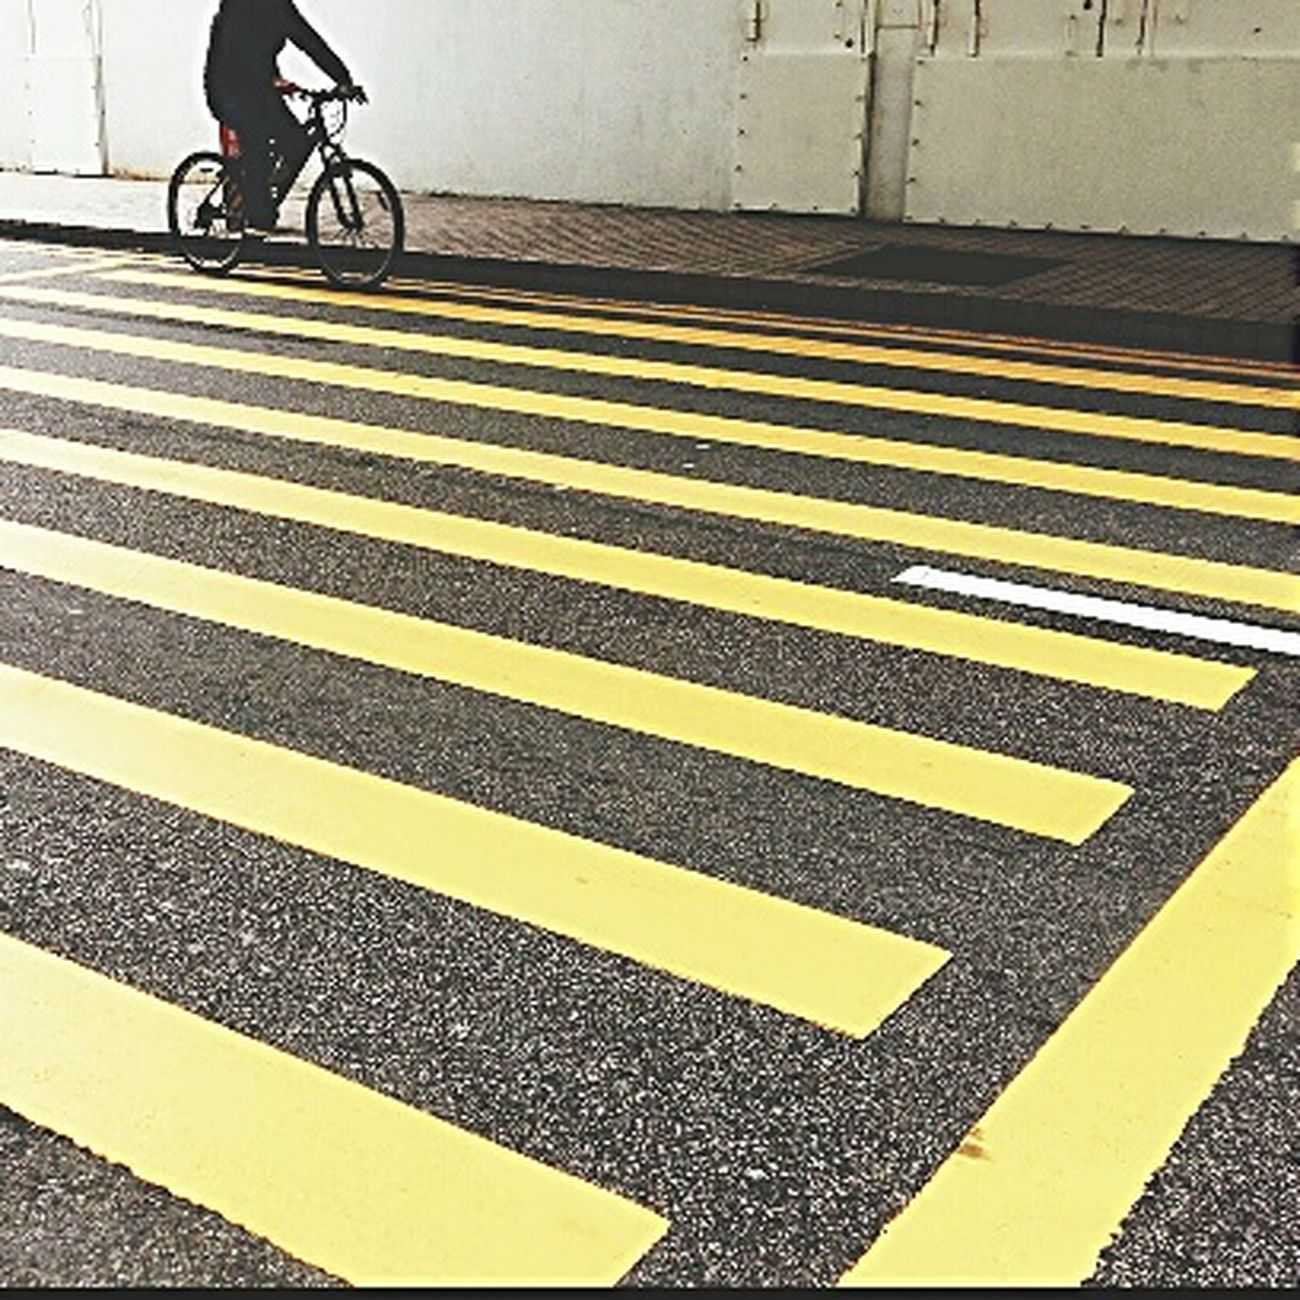 Streetography Streetart Bicycle Photography Eyeem Philippines Pedestrianlane On The Road 🚧⚠